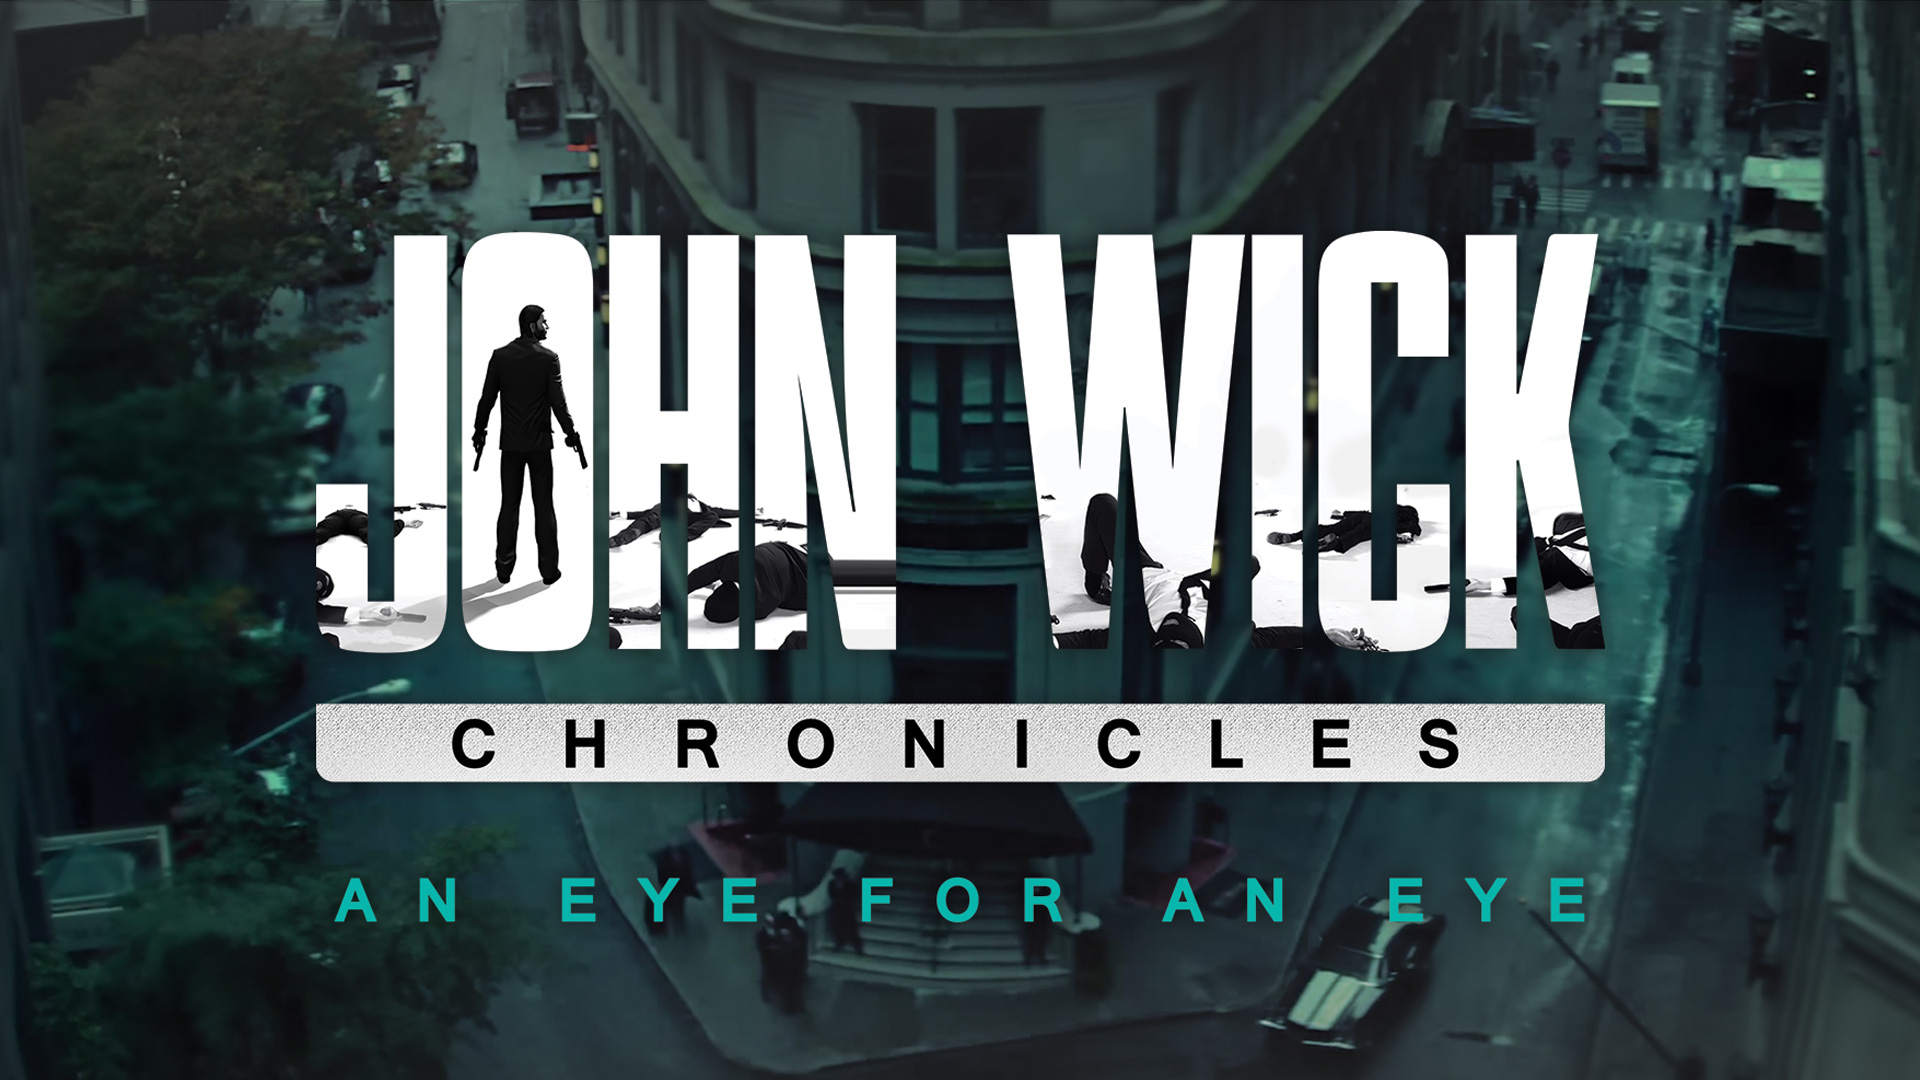 Lionsgate Bringing 7 Minute Preview Of John Wick Vr To New York Comic Con Road To Vr